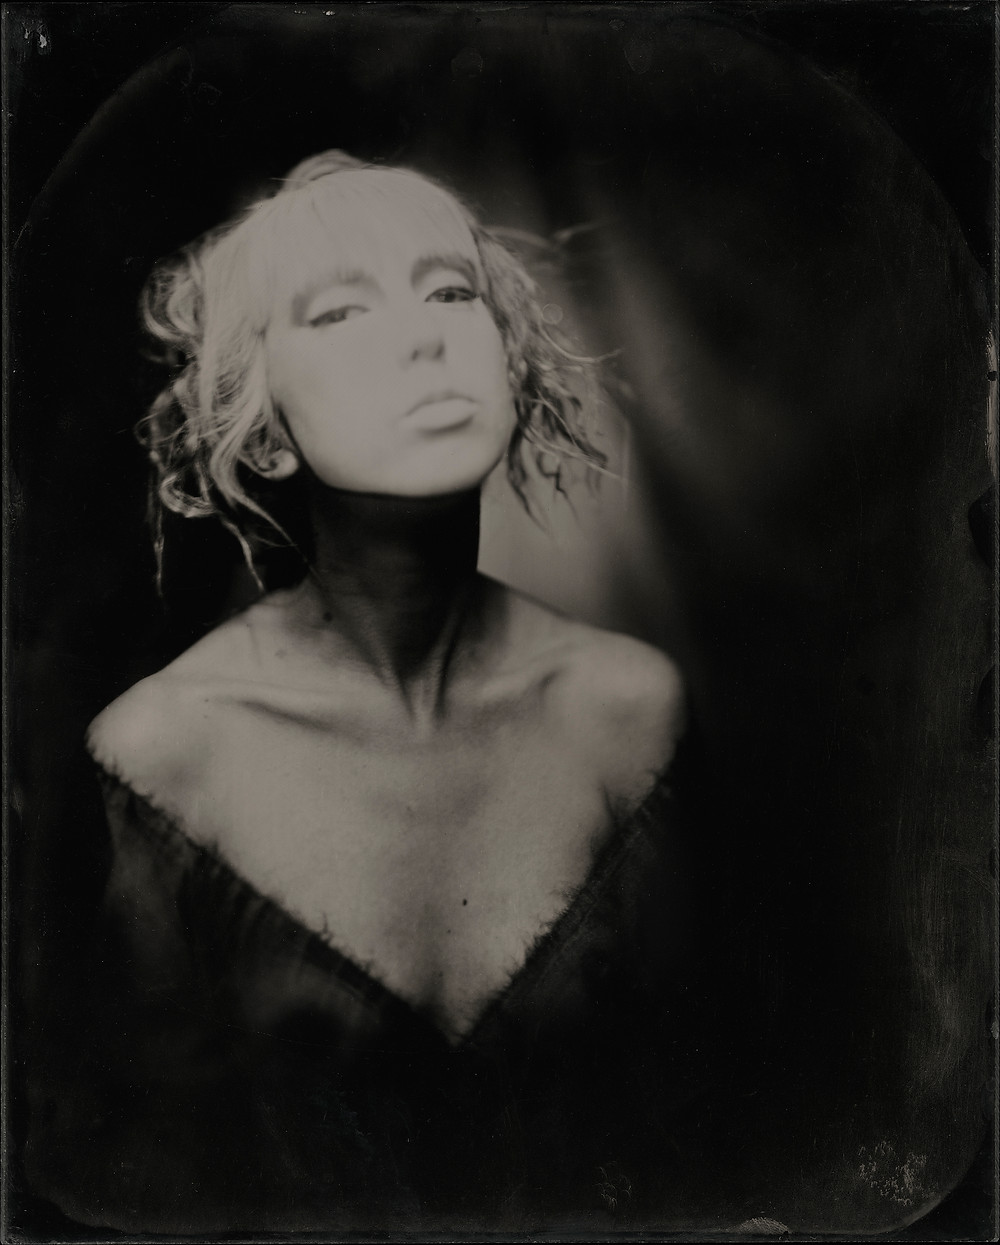 Model: @lucy.magdalene Makeup by: @cakefacemagic 8x10 plexitype (wet plate collodion on plexiglass) Wet plate collodion is an antique process invented in 1850. It is a liquid emulsion, shot in-camera, and developed on the spot.